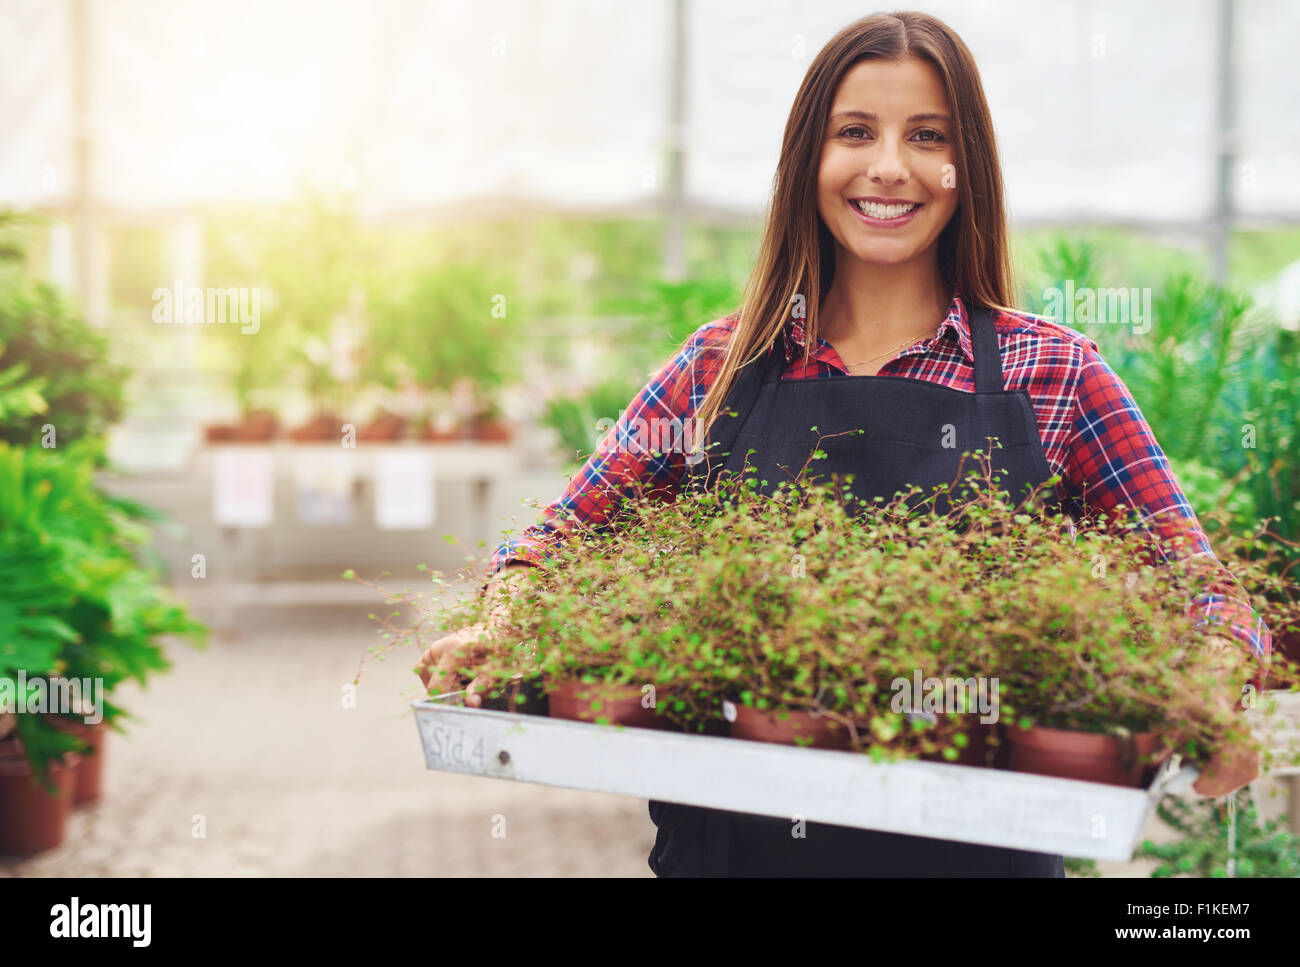 Smiling woman working in a commercial nursery selling plants to the public standing holding a tray of potted houseplants - Stock Image